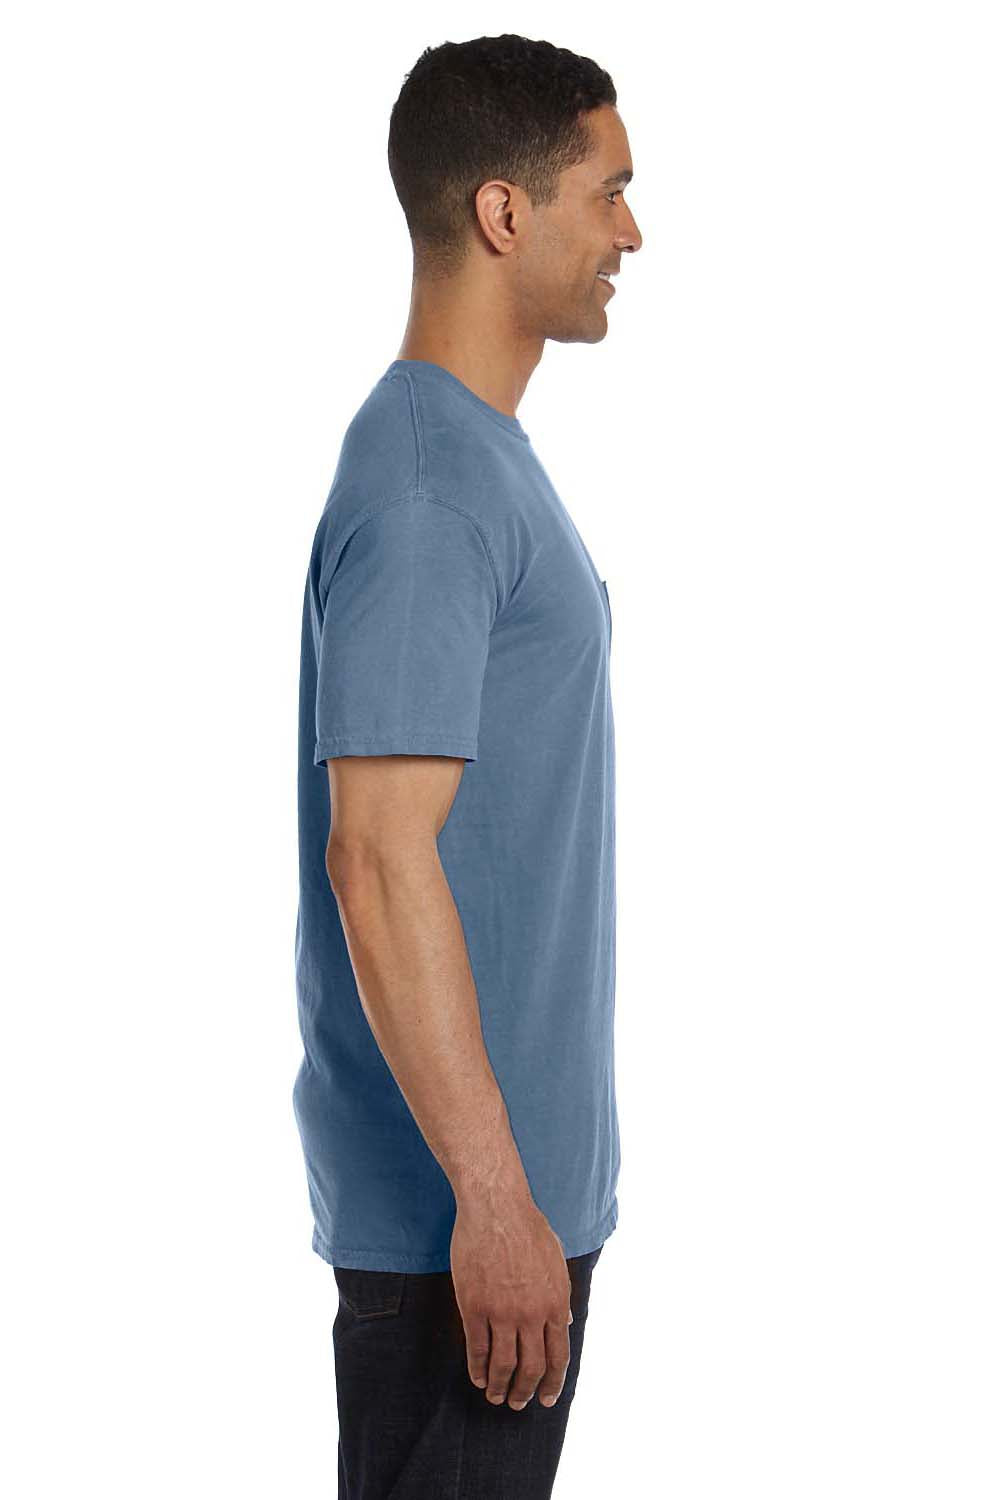 Comfort Colors 6030CC Mens Short Sleeve Crewneck T-Shirt w/ Pocket Blue Jean Side